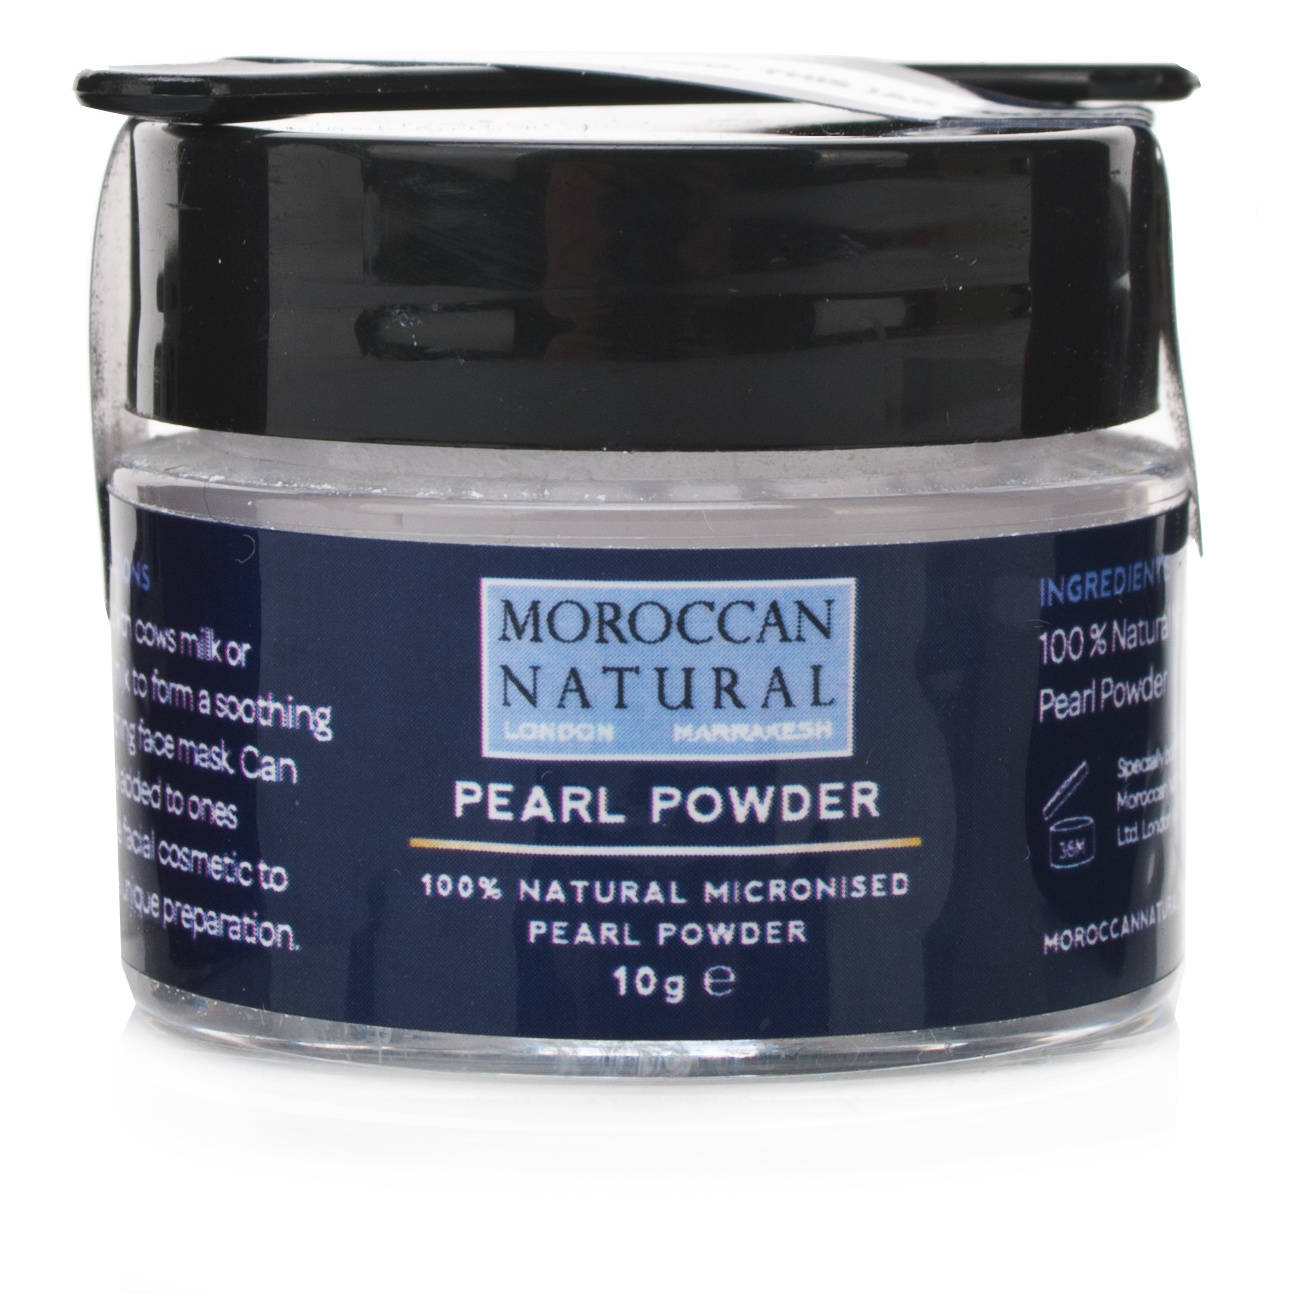 Pure Pearl Powder